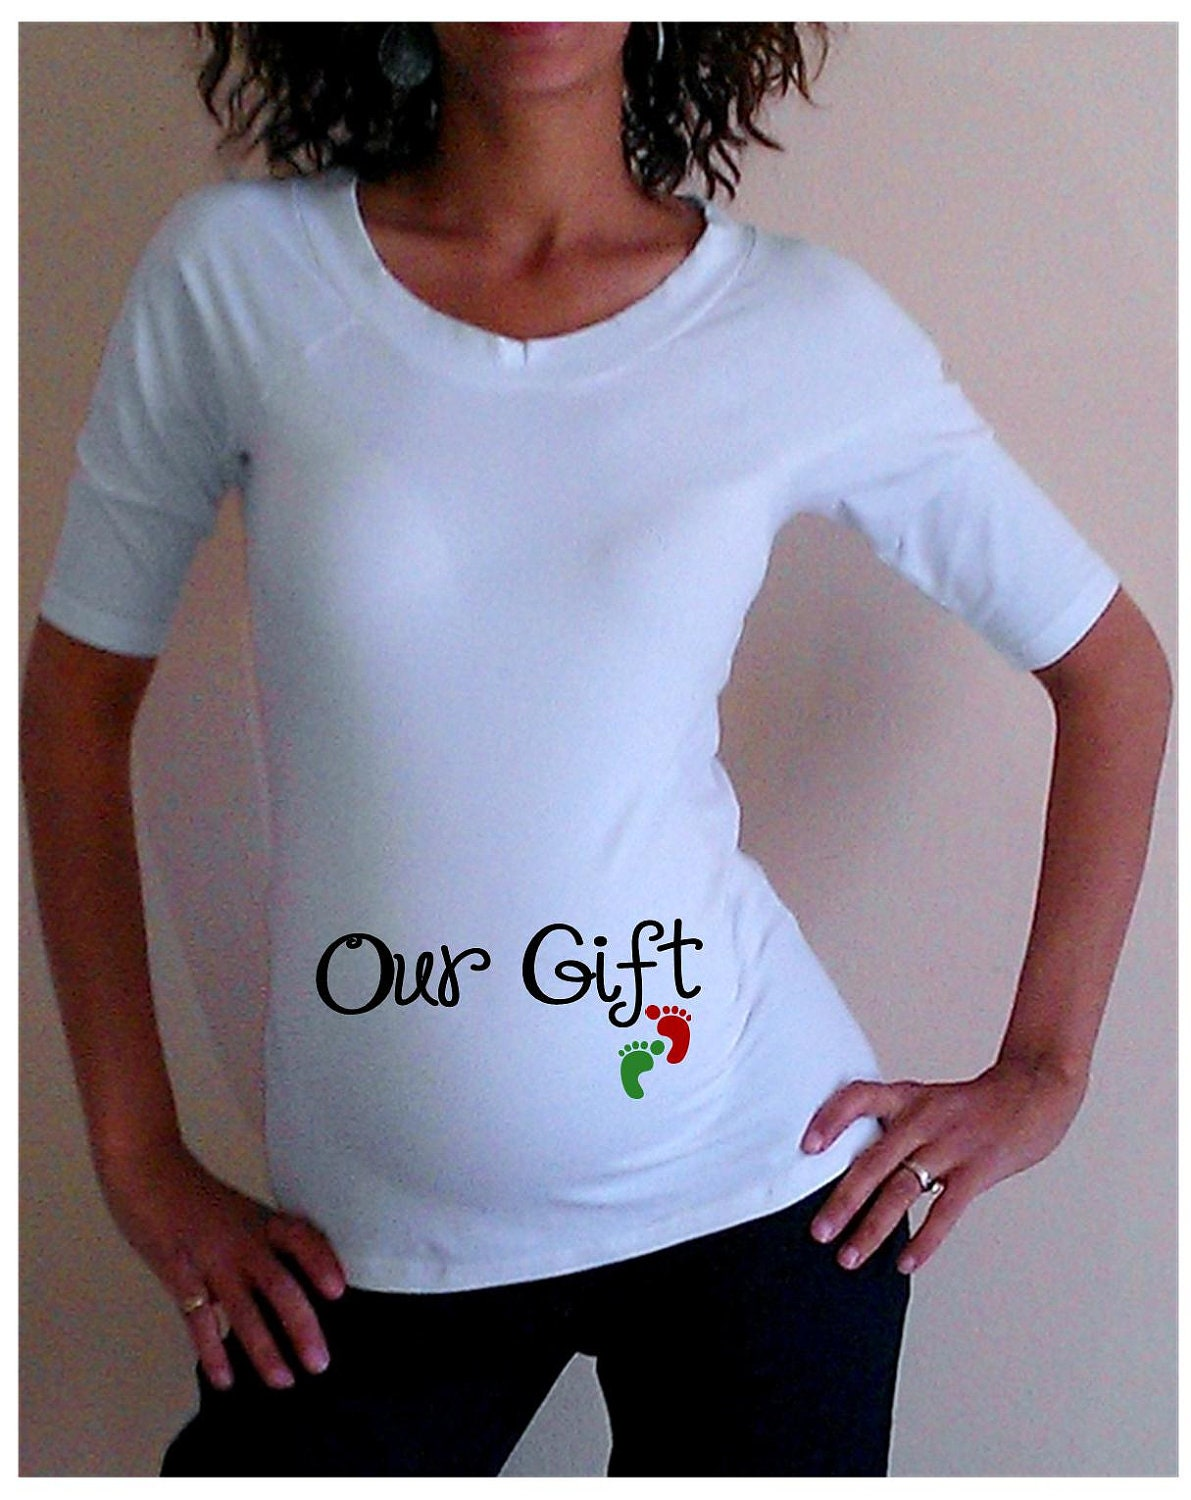 Maternity Christmas Shirt Crazy Dog T-Shirts Maternity Christmas Baby Peeking Elf Funny T shirt Holiday Xmas Pregnancy T shirt. by Crazy Dog T-Shirts. $ - $ $ 15 $ 17 out of 5 stars Product Features guaranteed! This is a maternity shirt designed to fit expecting.